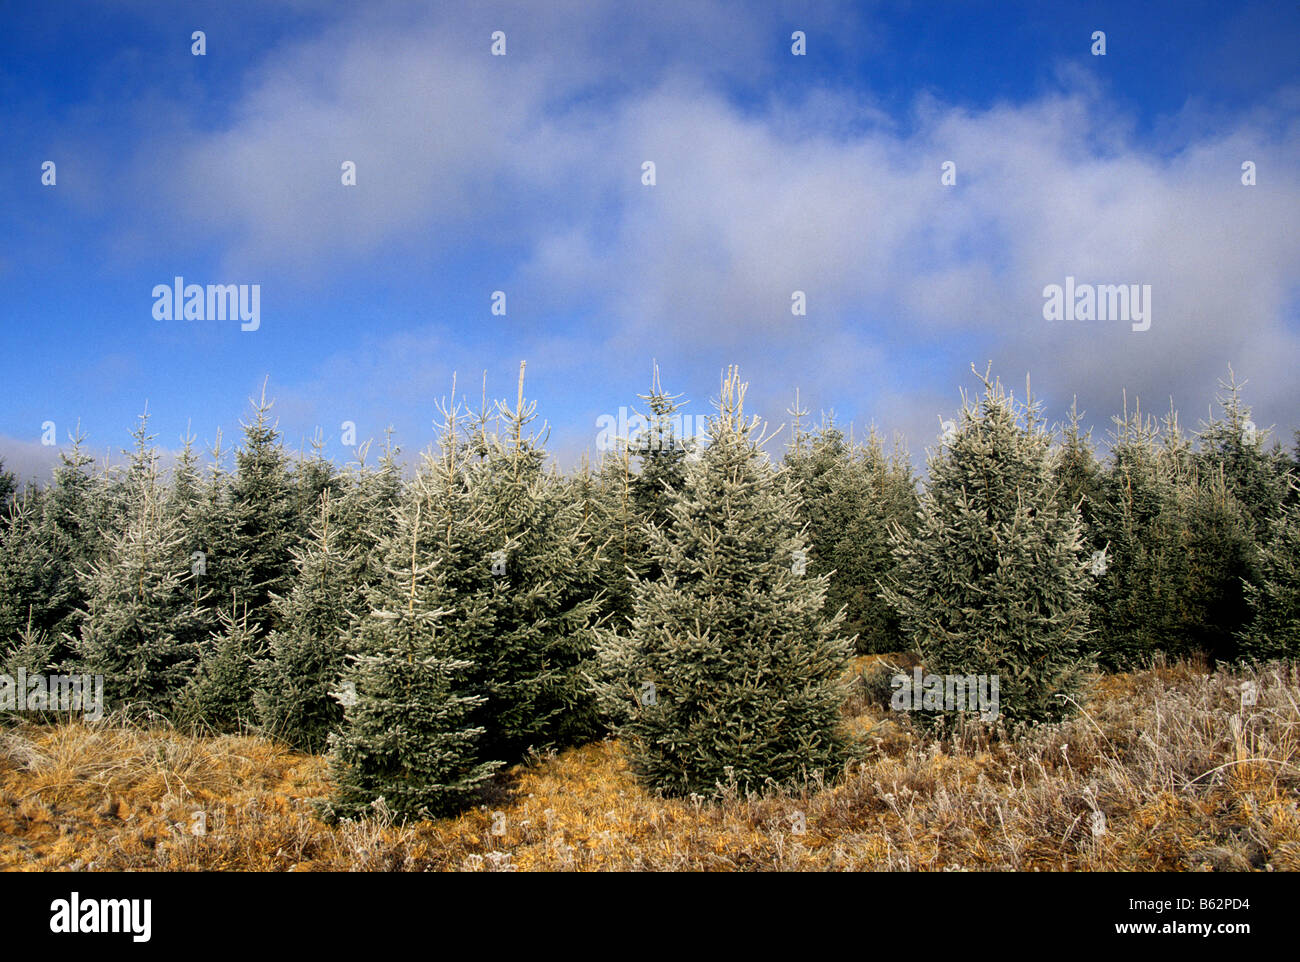 Christmas fir trees in winter - Stock Image